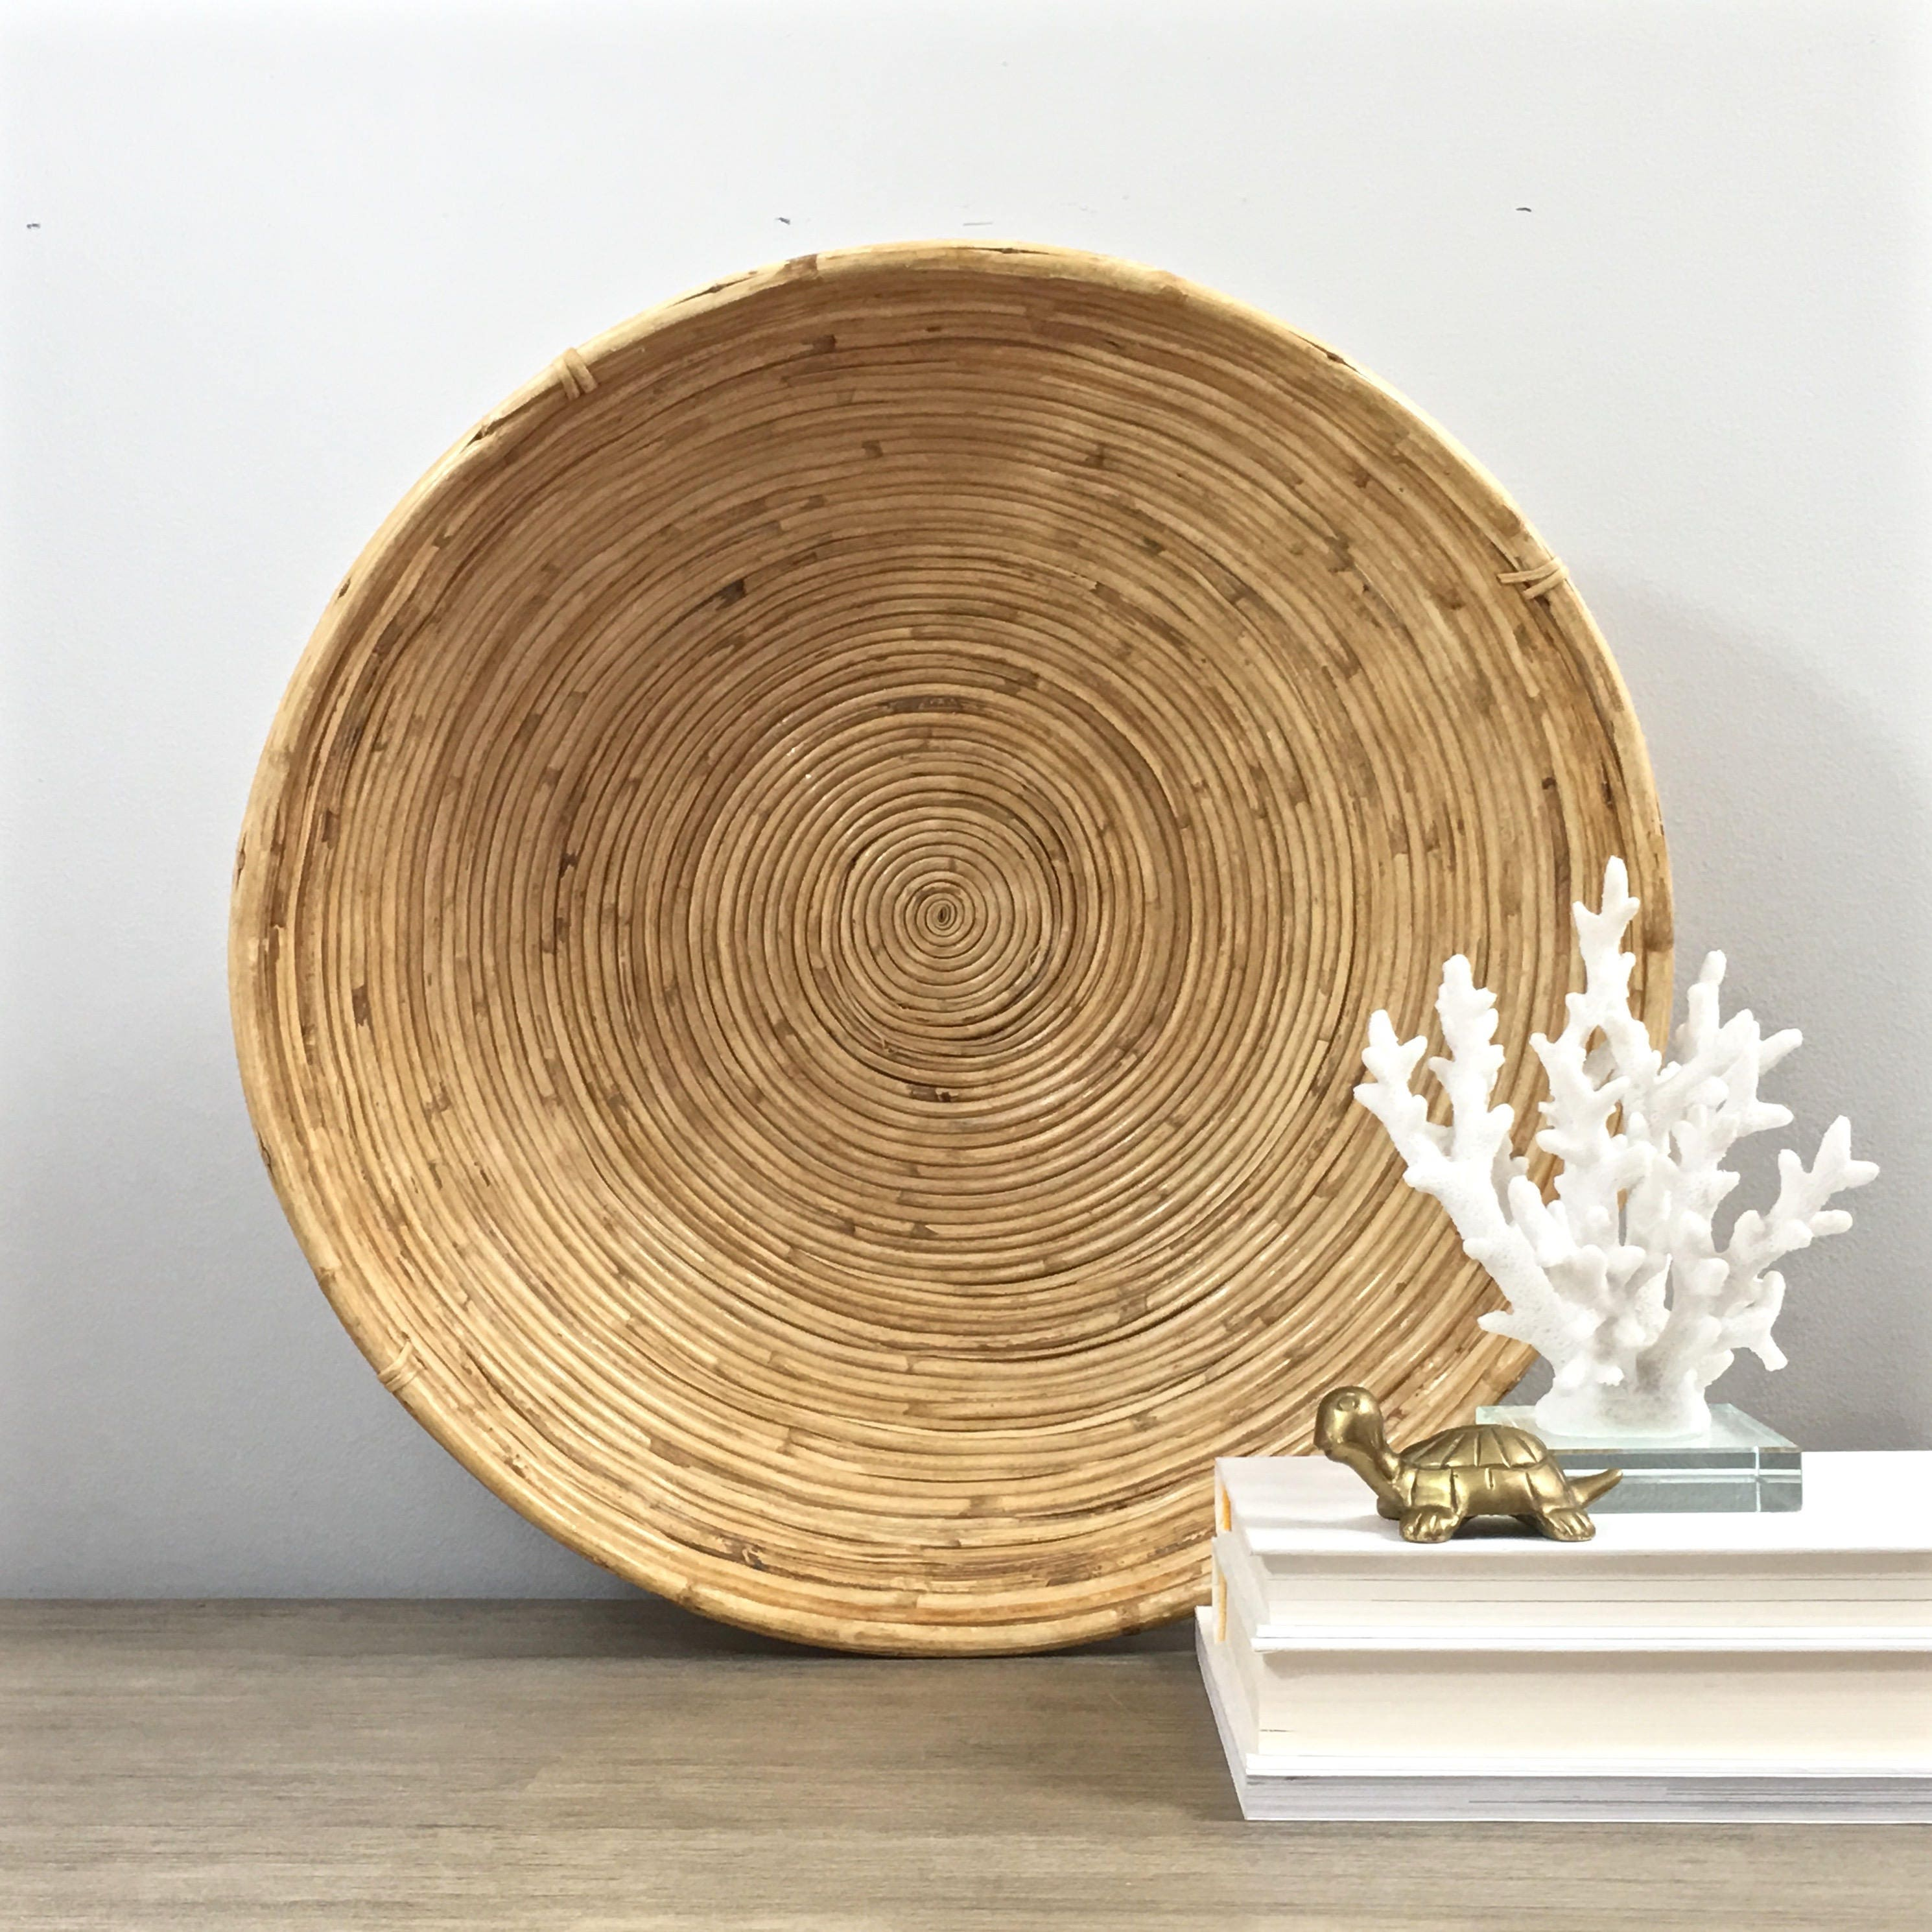 Coiled Bamboo Bowl 18 Solid Cane Wrapped Large Decorative